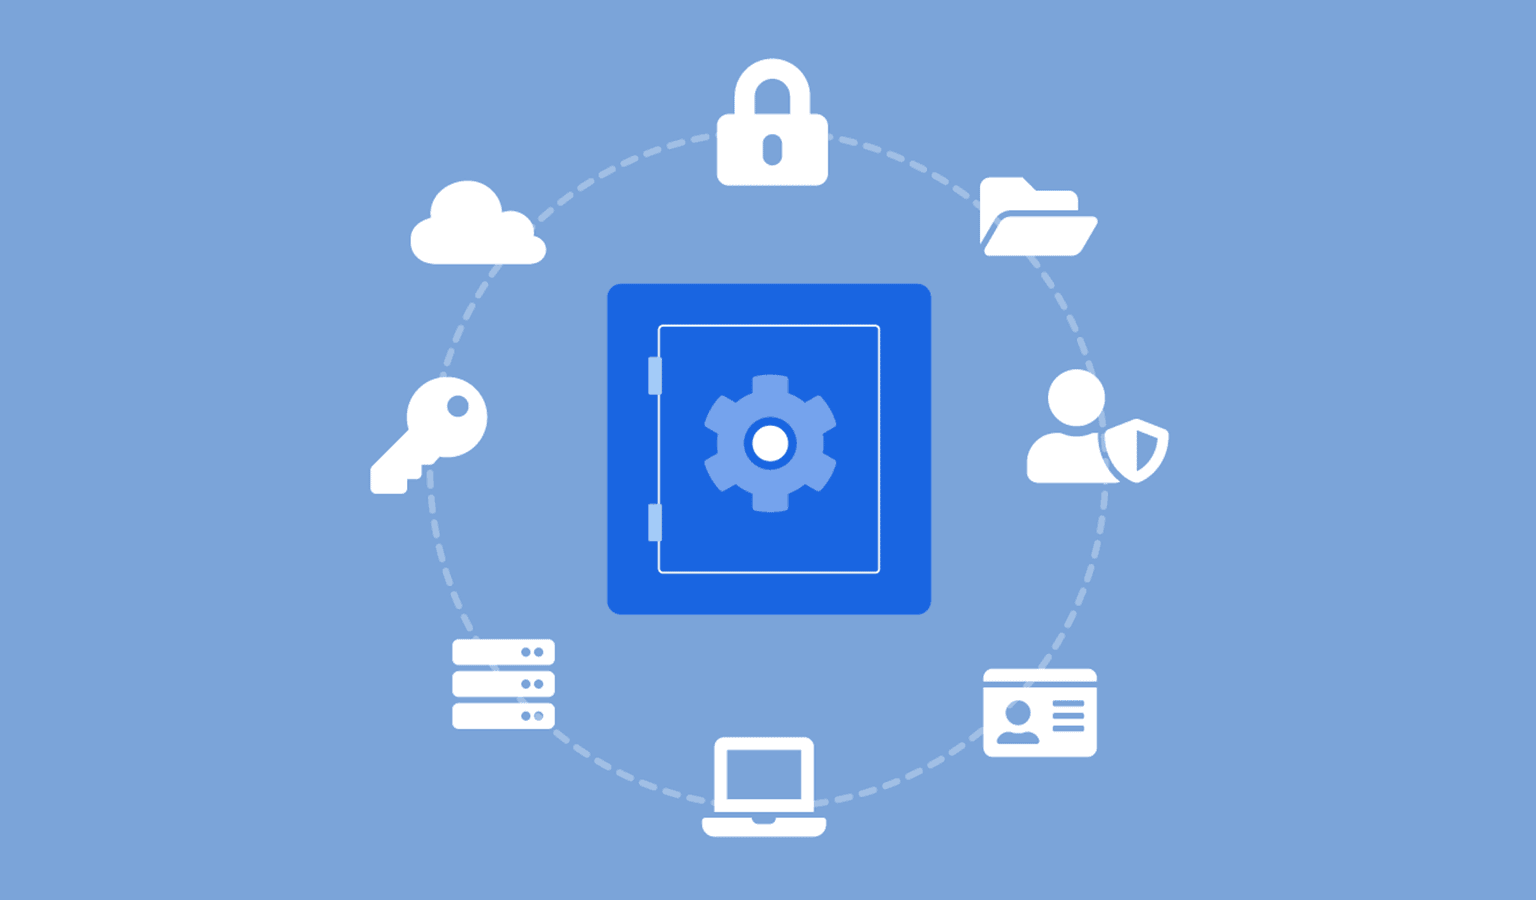 Light blue background with dark blue safe in the middle surrounded by white icons, padlock, cloud, key, server, files, computer